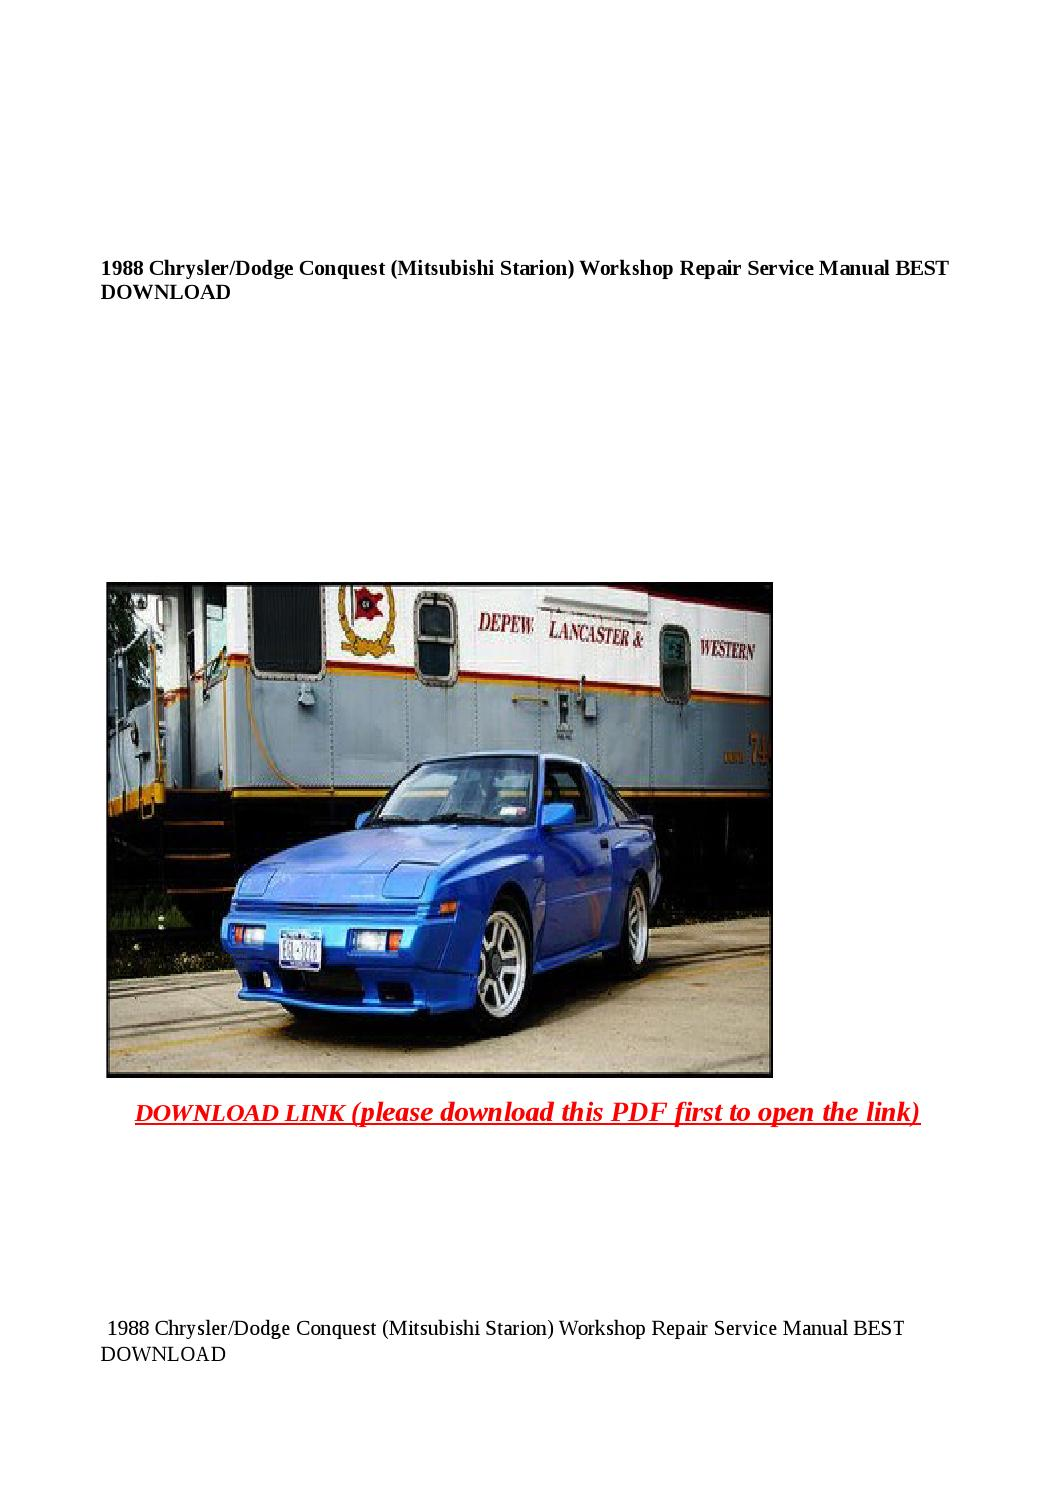 1988 chrysler dodge conquest (mitsubishi starion) workshop repair service  manual best download by Anna Tang - issuu